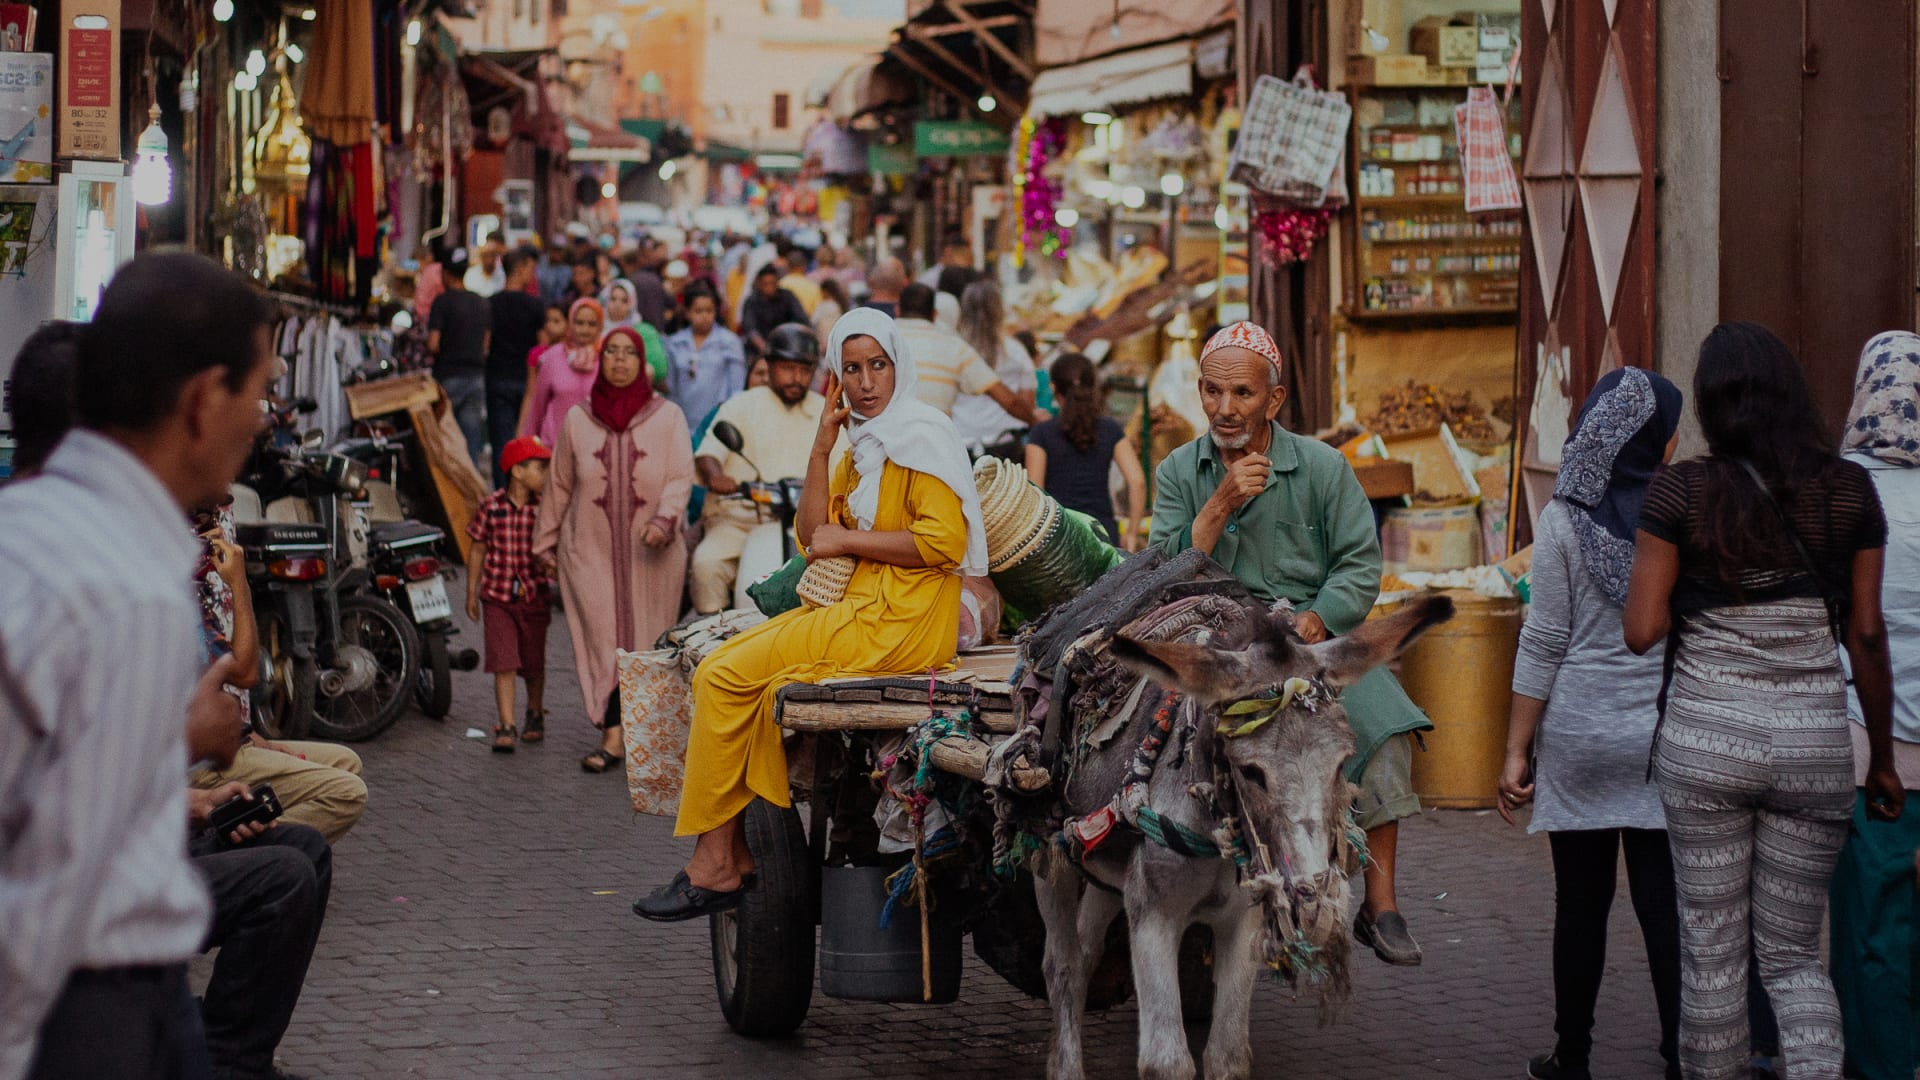 Discover Marrakech Like a Local tour - Marrakech - Withlocals